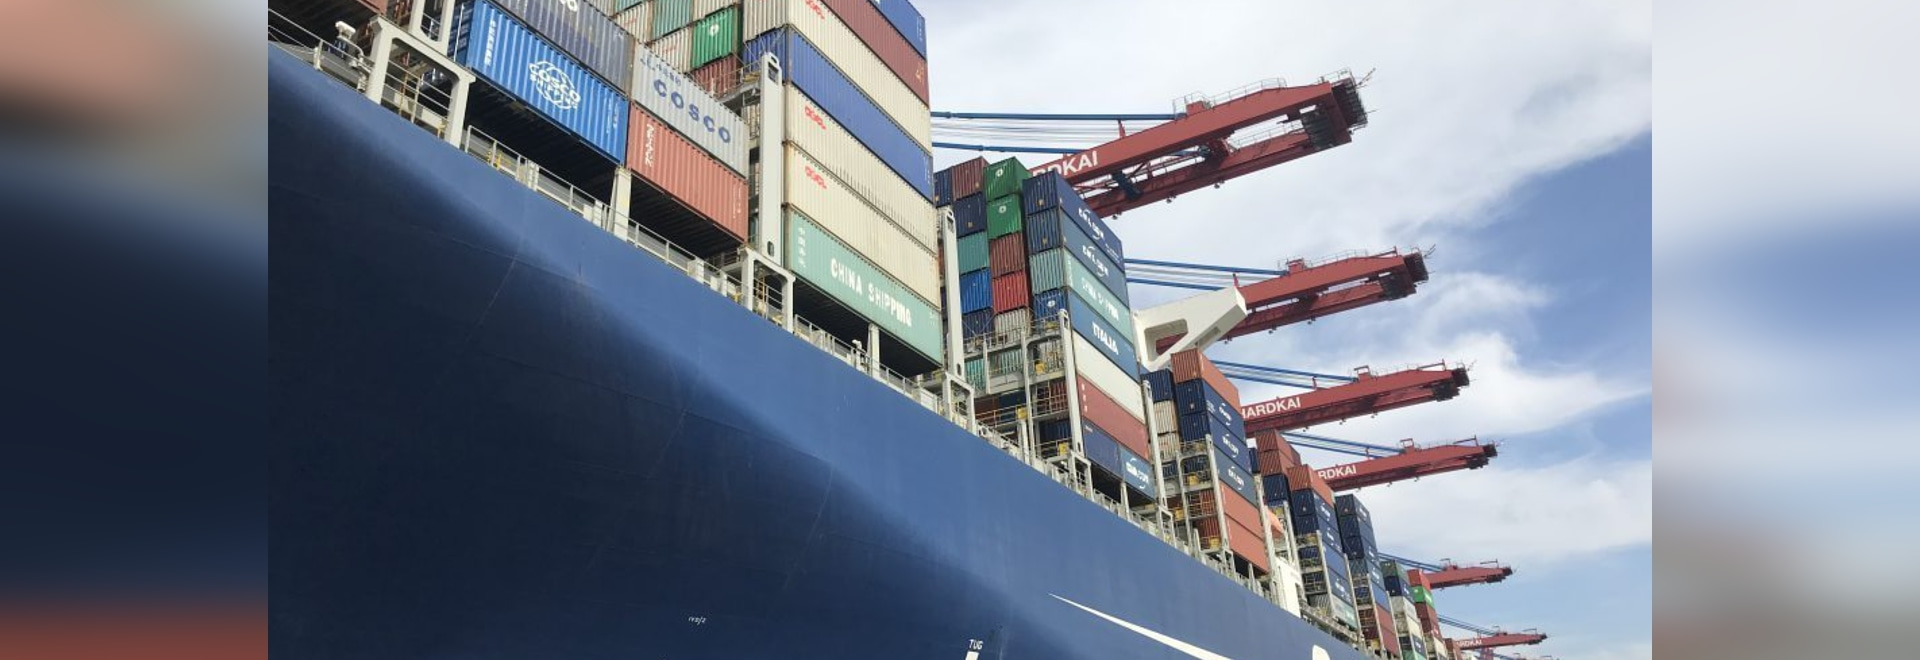 CMA CGM Launches CEVA Logistics Takeover